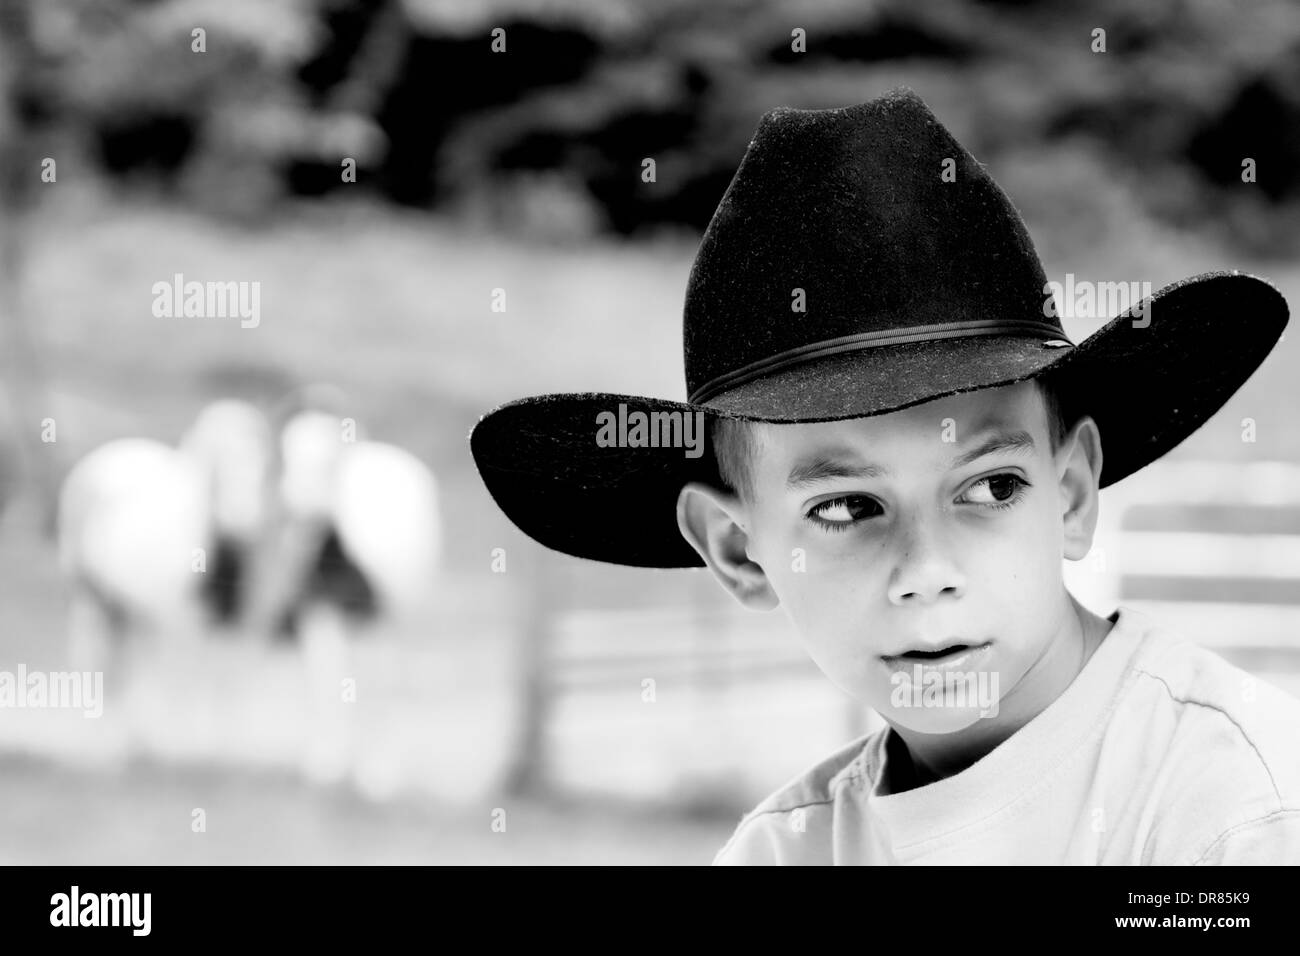 61f6fcb69a996 Young Cowboy Portrait on a Ranch Stock Photo  65948269 - Alamy